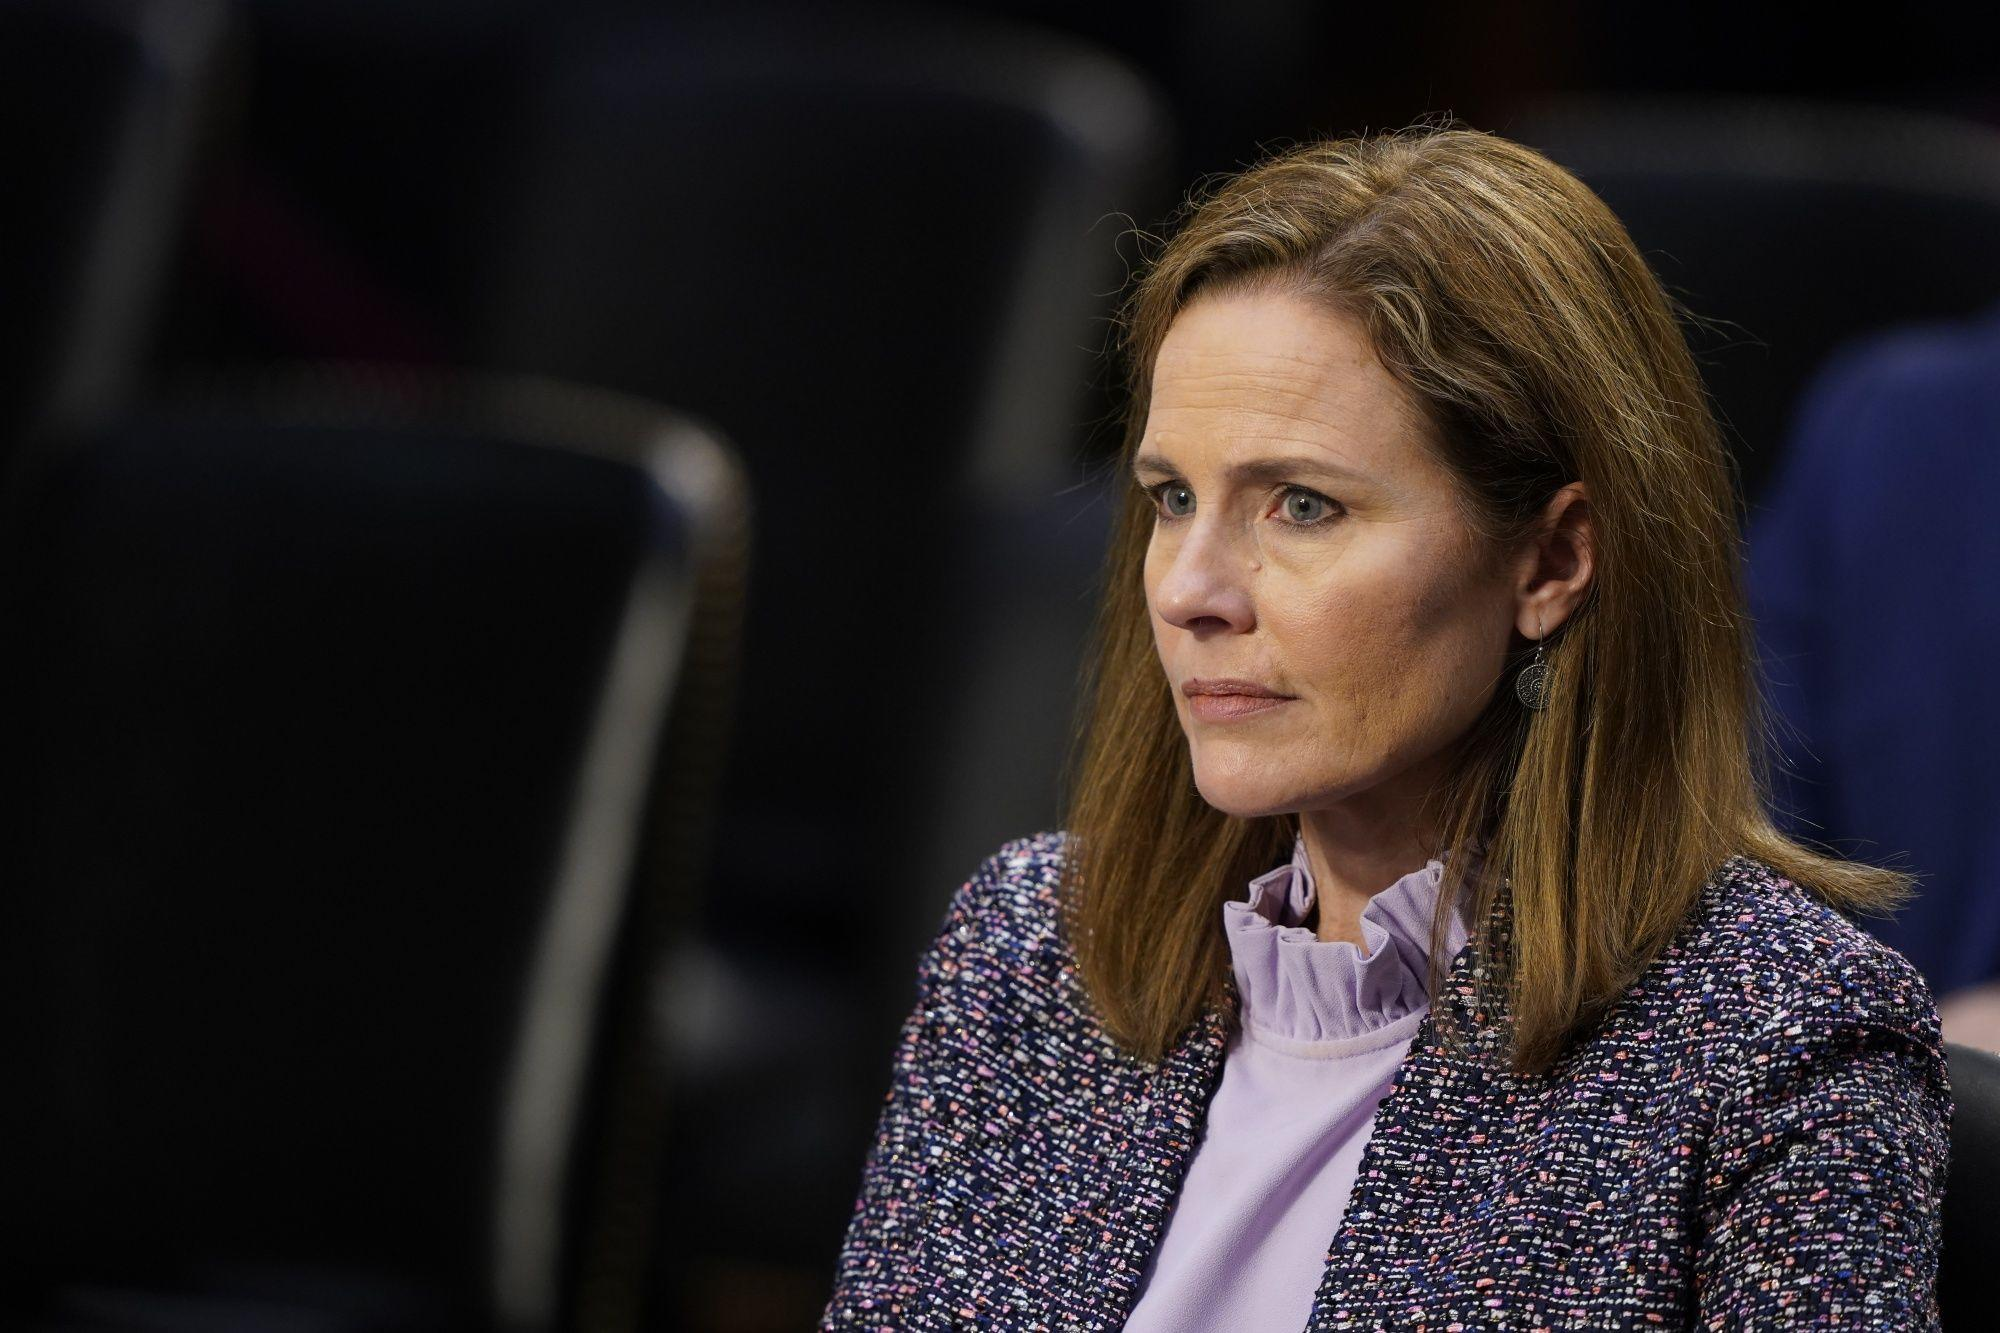 Amy Coney Barrett Should Recuse Herself on Abortion Cases